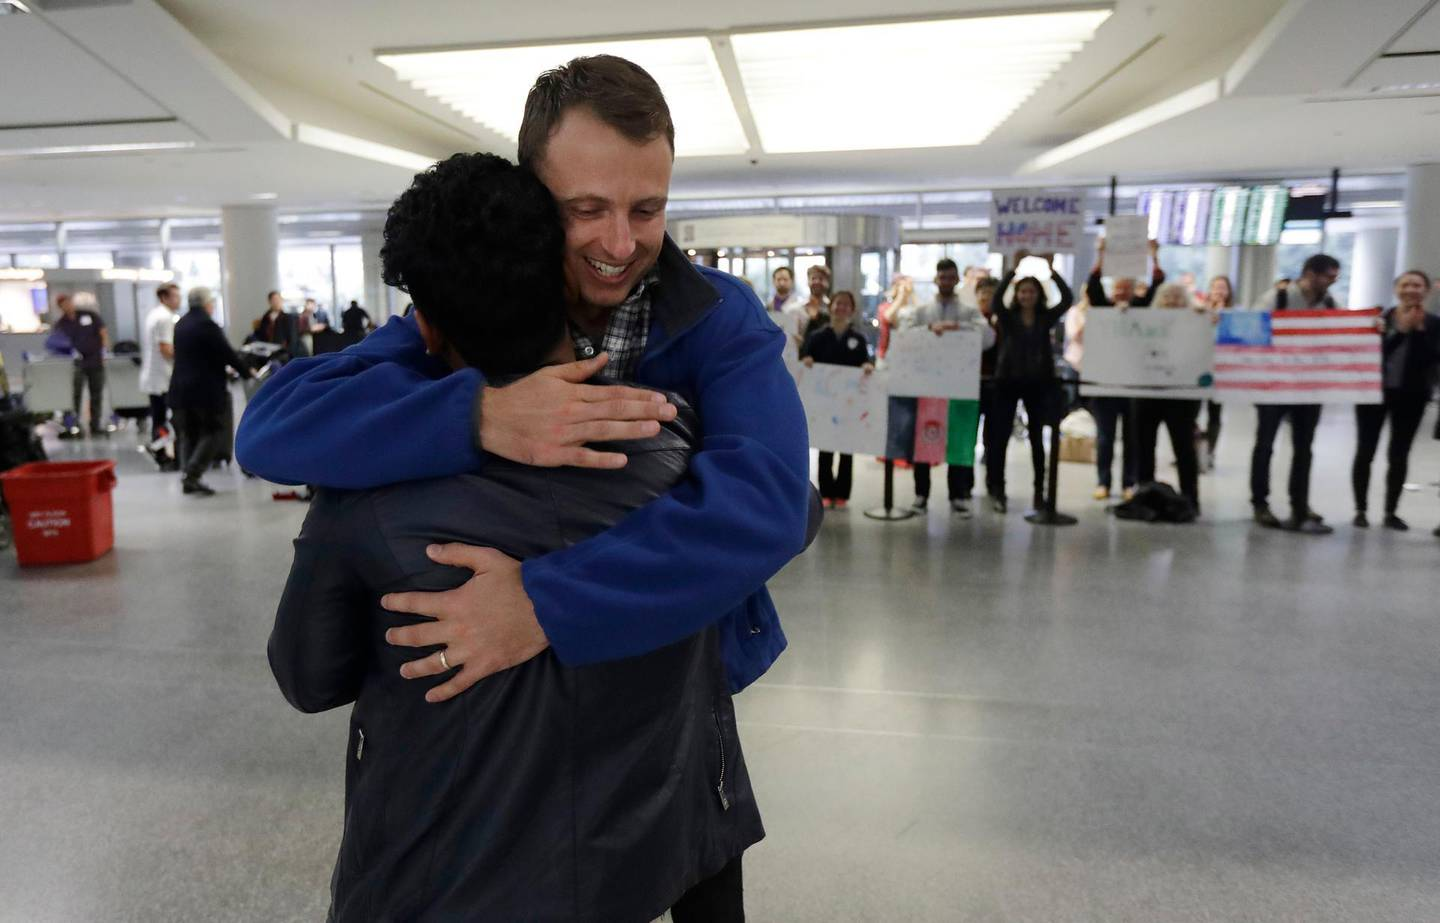 Army Capt. Matthew Ball, right, hugs his former interpreter Qismat Amin, as Amin arrives from Afghanistan, at San Francisco International Airport Wednesday, Feb. 8, 2017, in San Francisco. Ball welcomed Amin to the United States after buying him a plane ticket to ensure he would get in quickly amid concerns the Trump administration may expand its travel ban to Afghanistan. (AP Photo/Marcio Jose Sanchez)